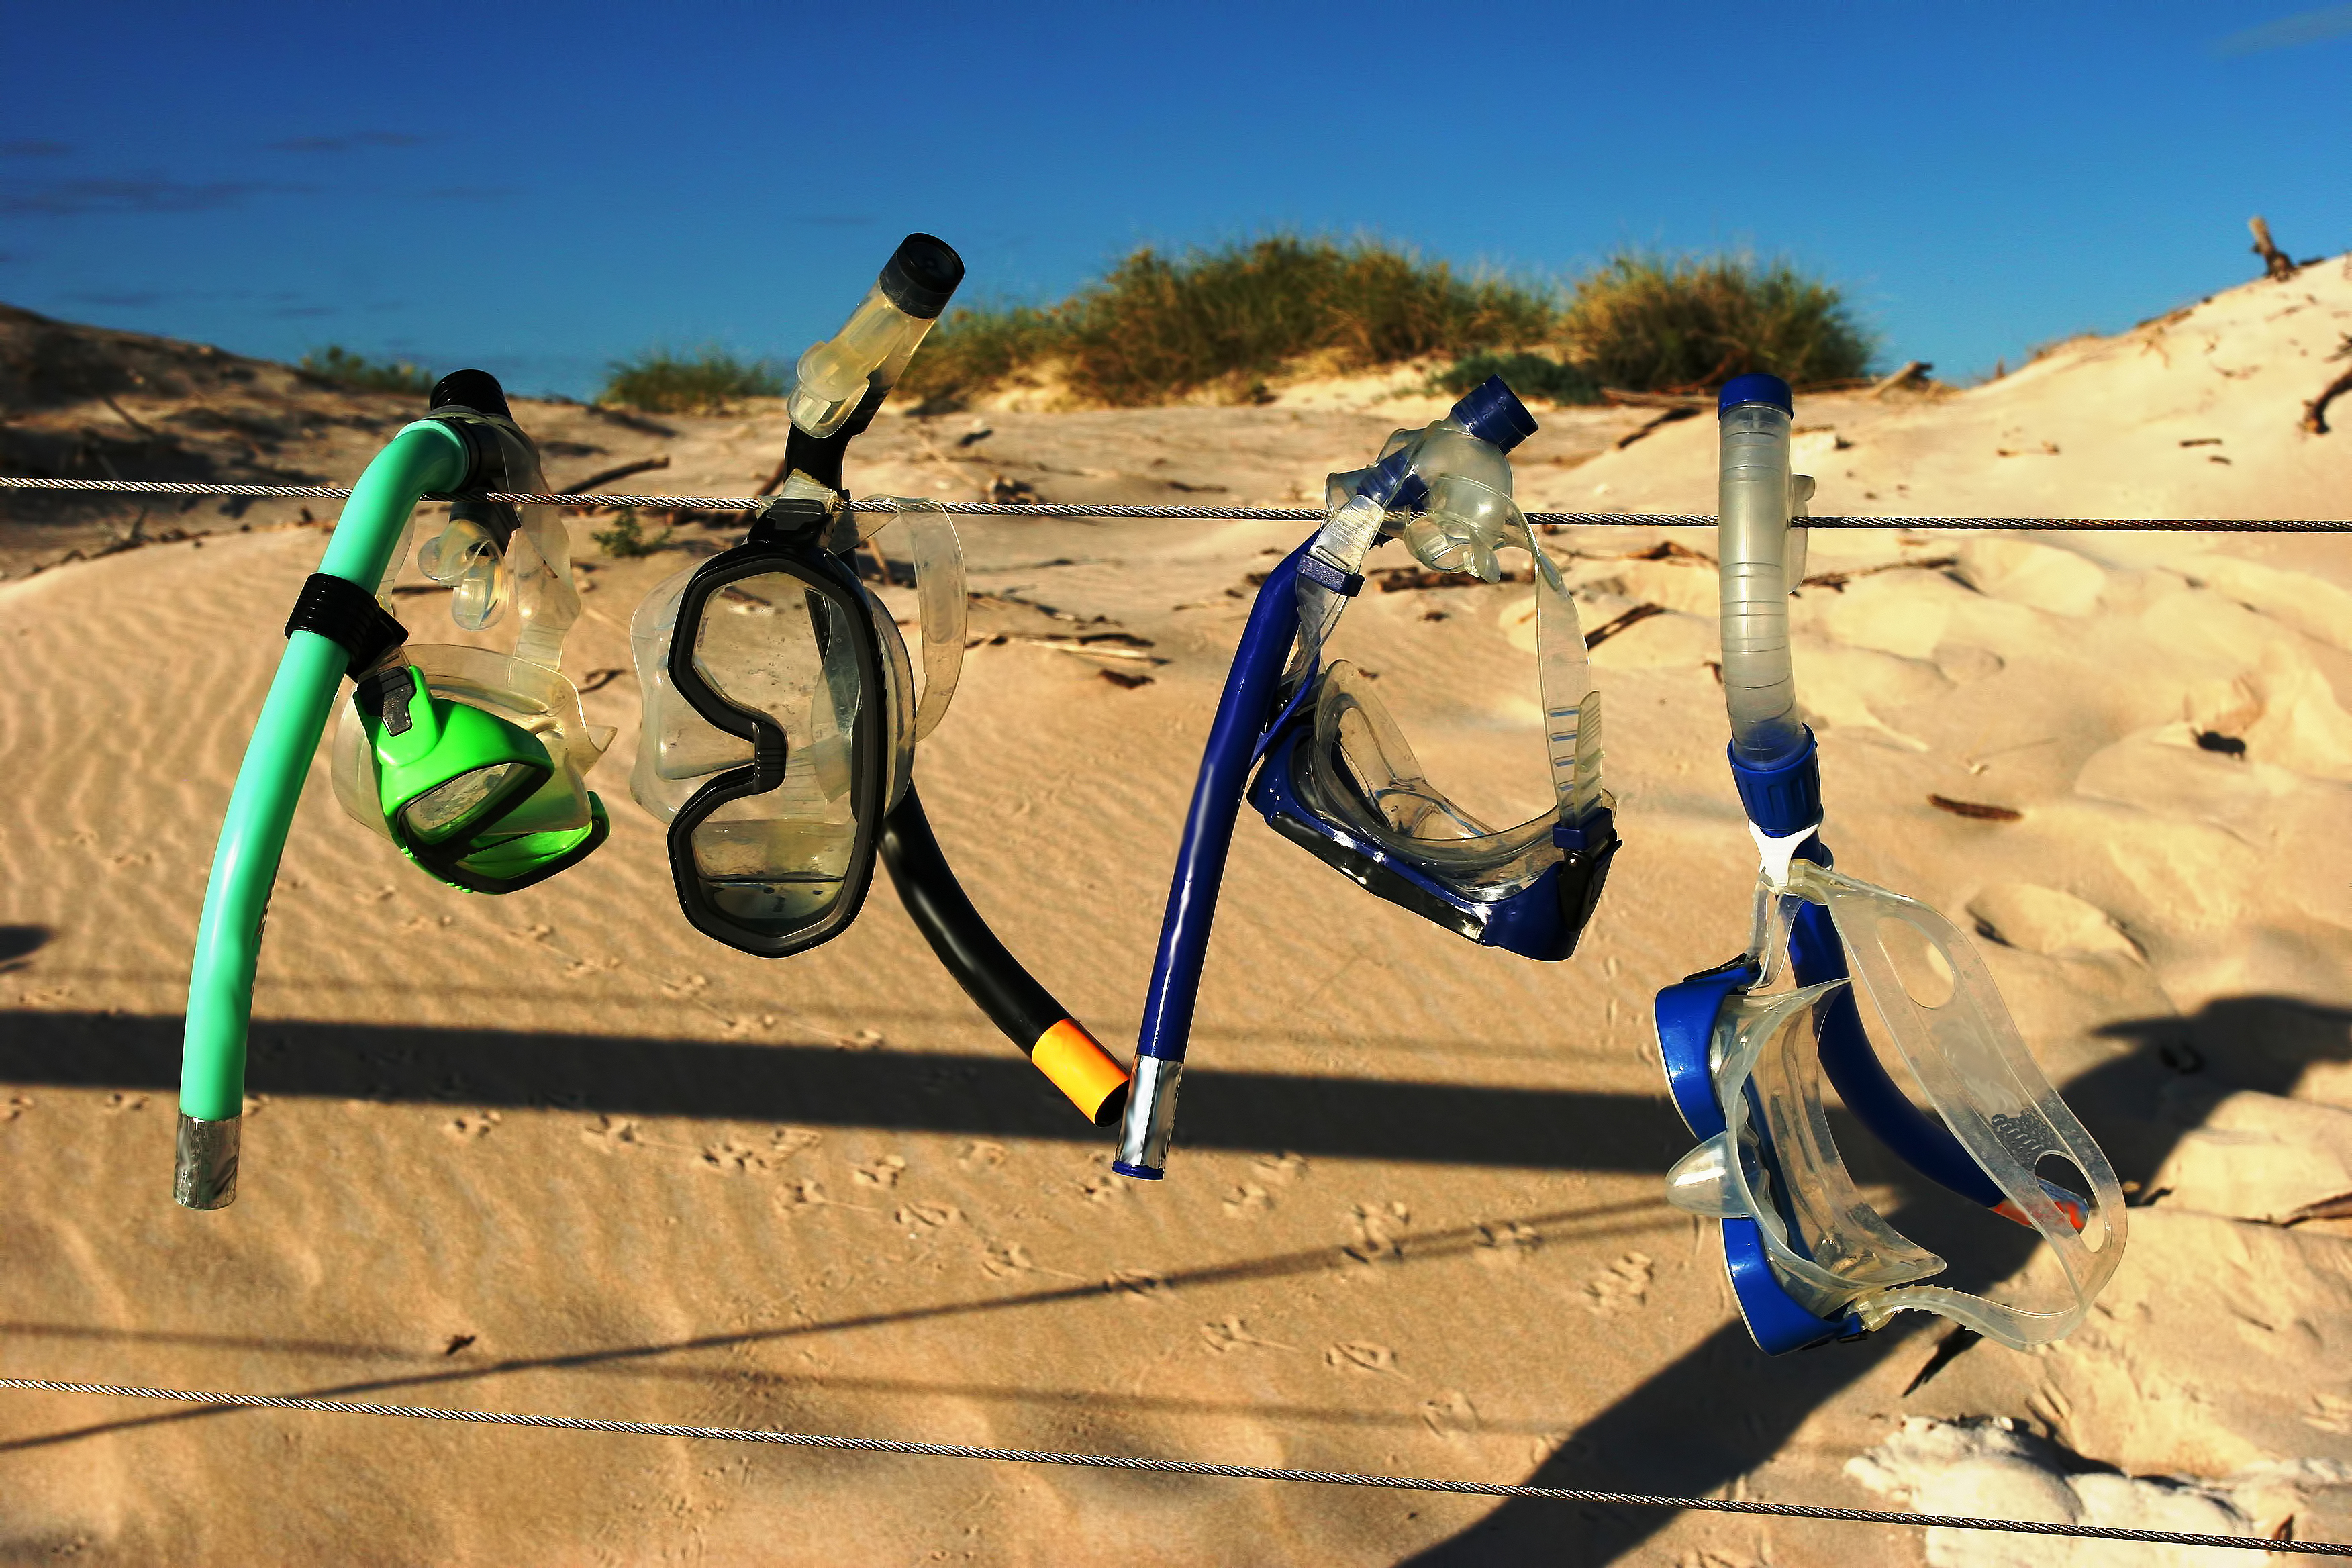 Snorkelling Gear Drying on a Wire Fence